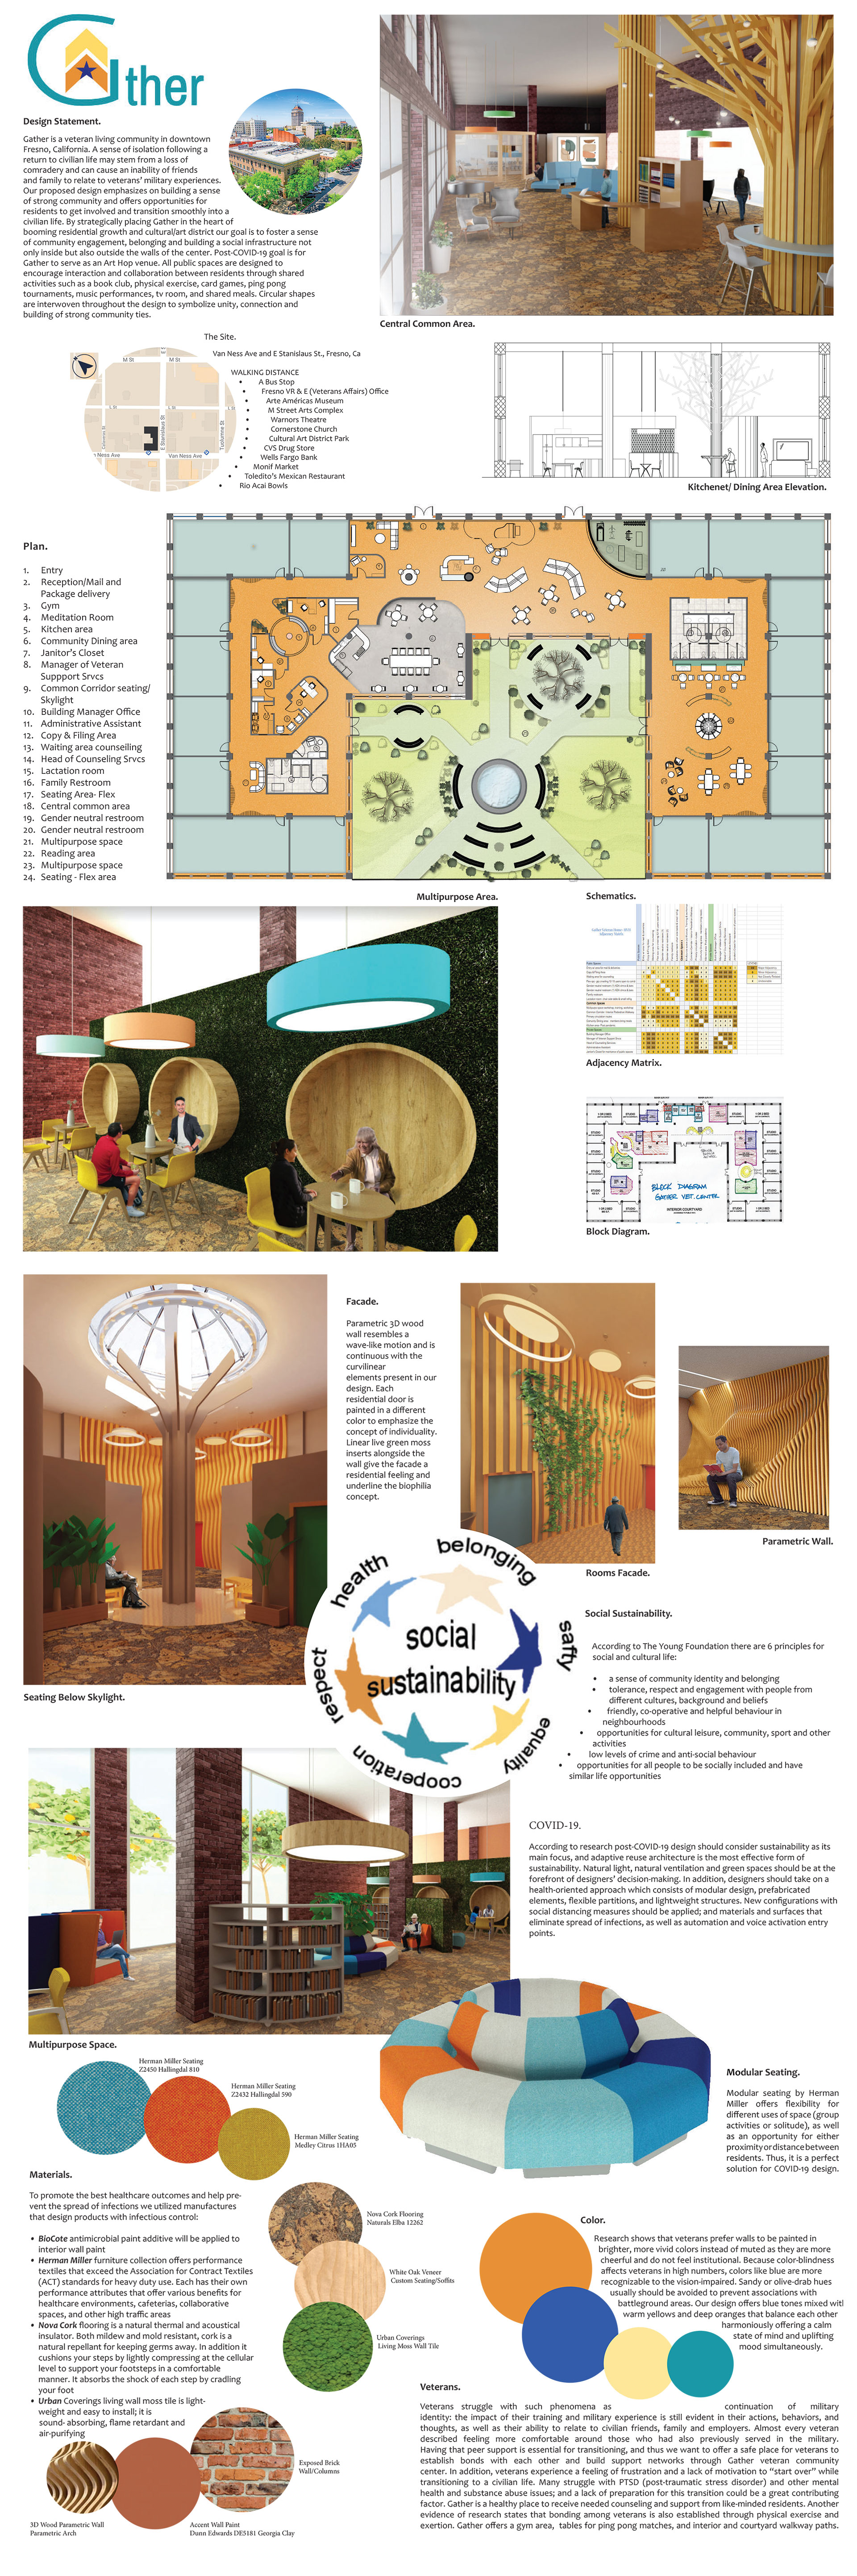 The regional finalist posters of the student's design and plan.